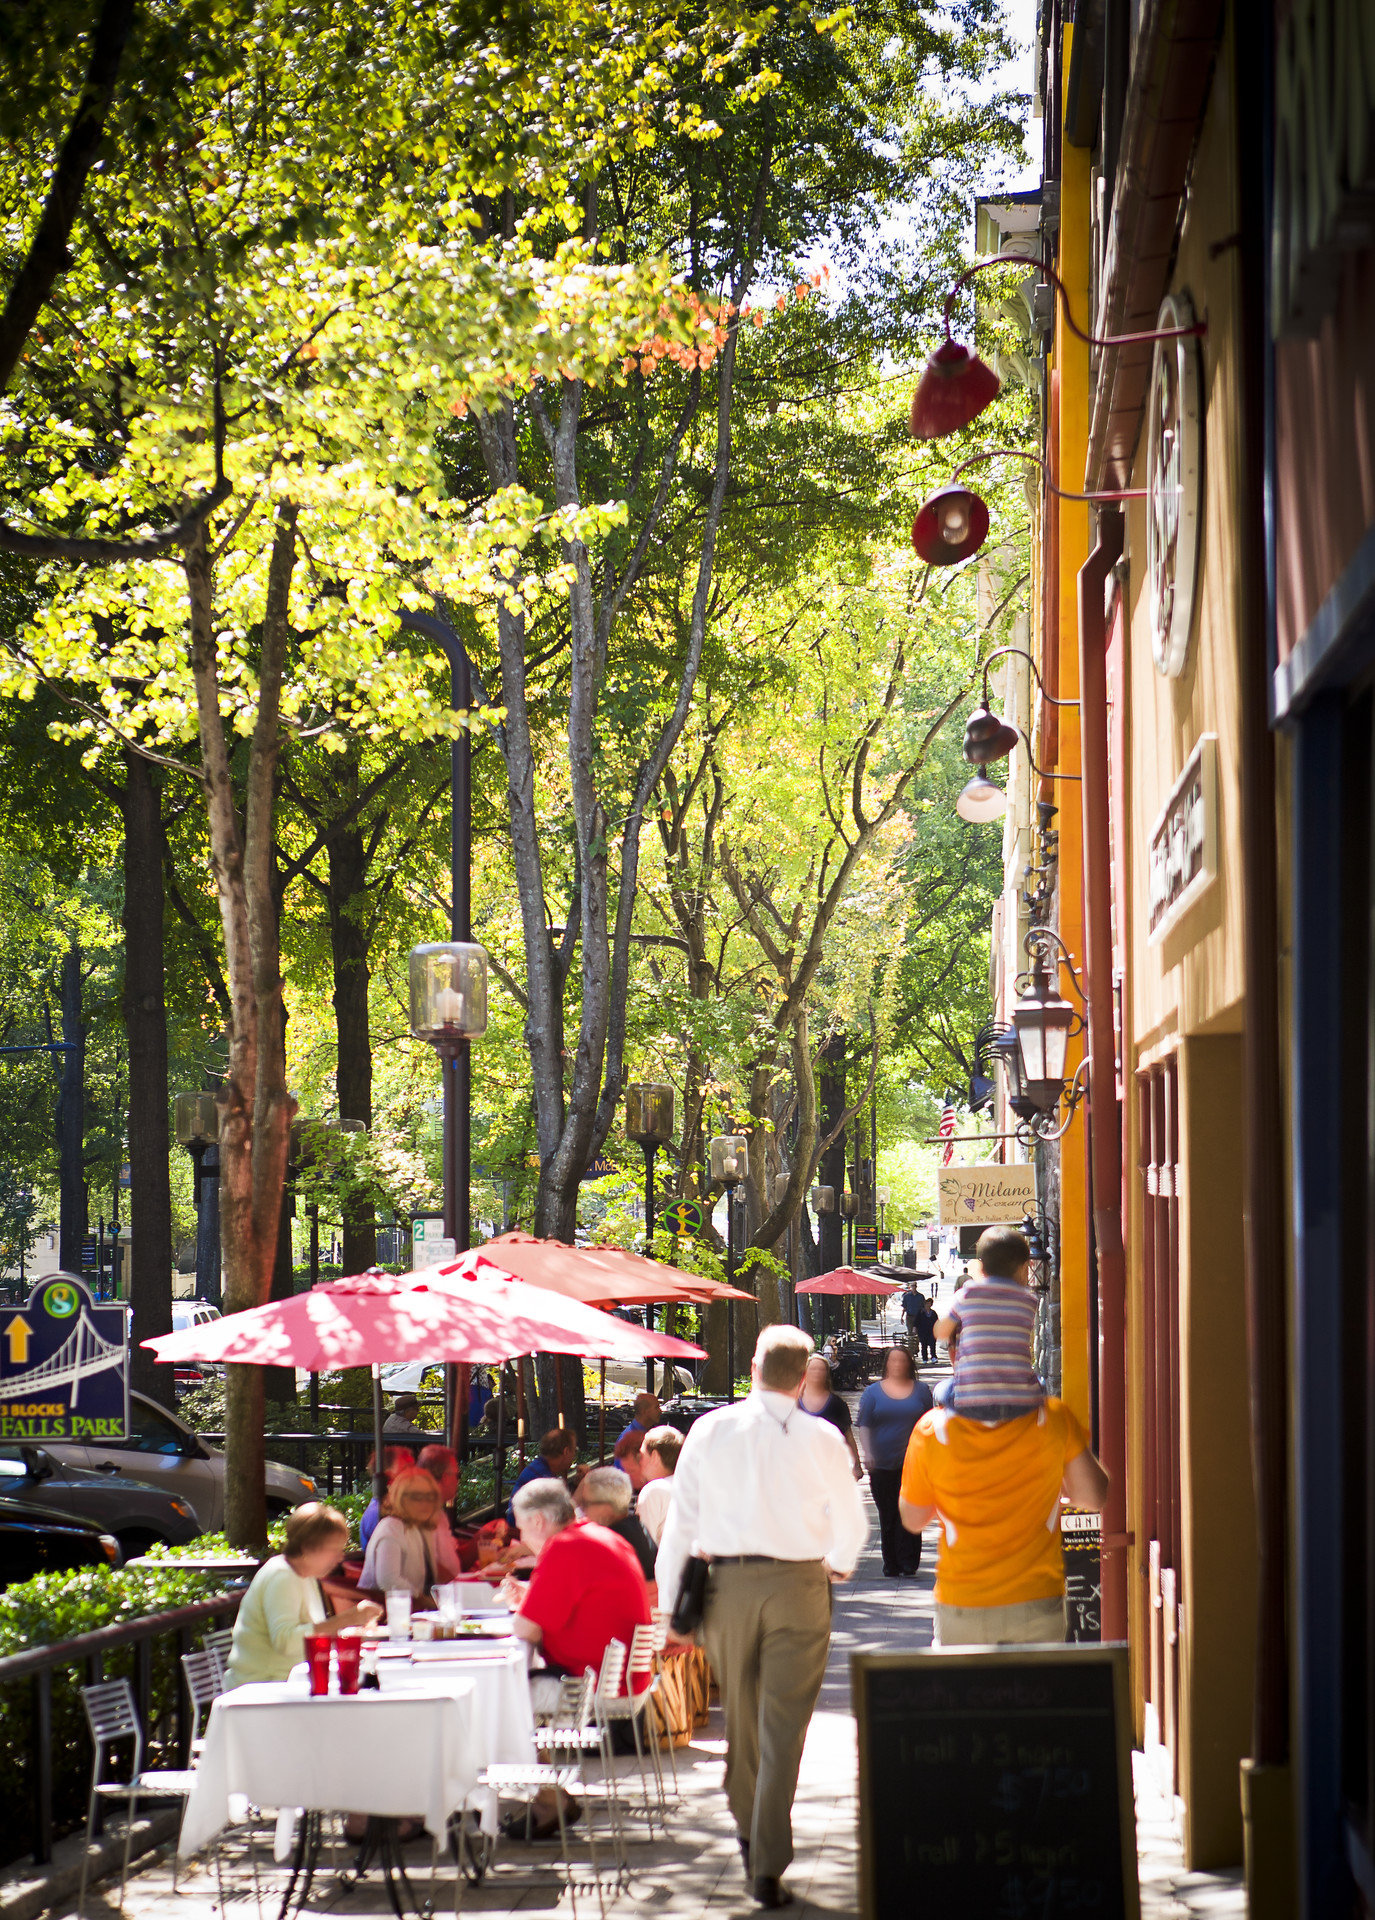 Buildings charming city streets cozy Greenery homey outdoor dining Outdoors people quaint shopping Shops streets tables trees Trip Ideas tree outdoor street neighbourhood season flower spring autumn